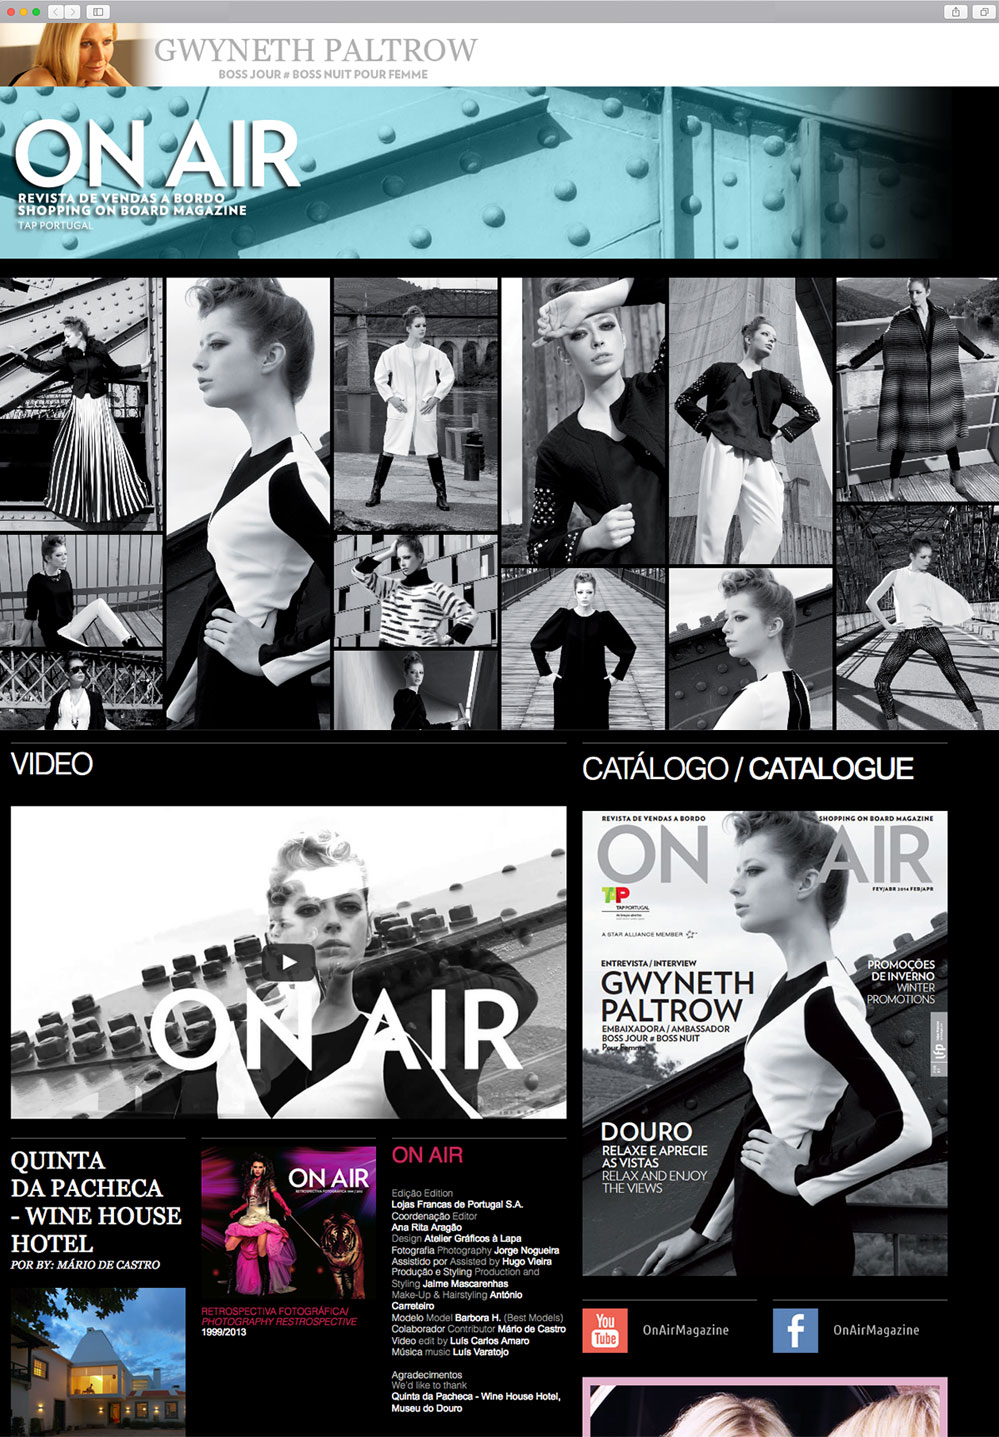 ON AIR - Fevereiro 2014 - site